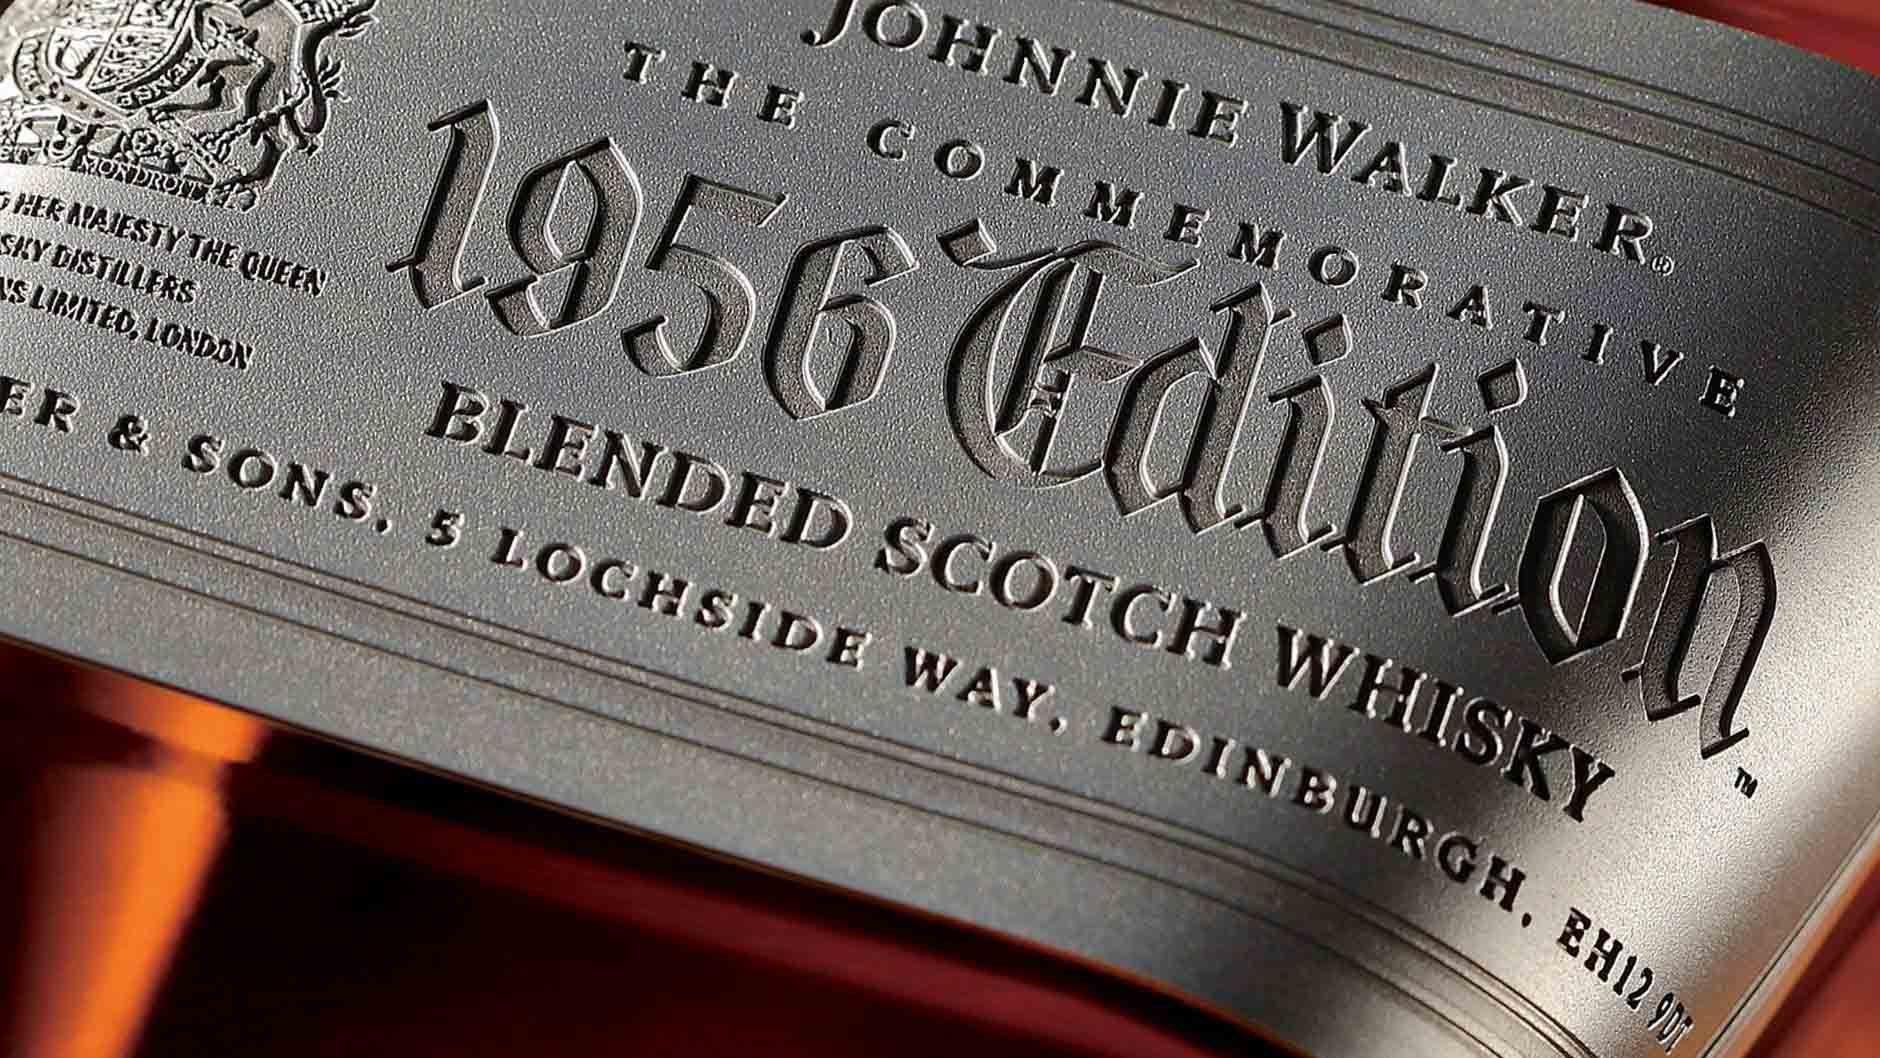 Label of Johnnie Walker The Commemorative 1956 Edition Blended Scotch Whisky